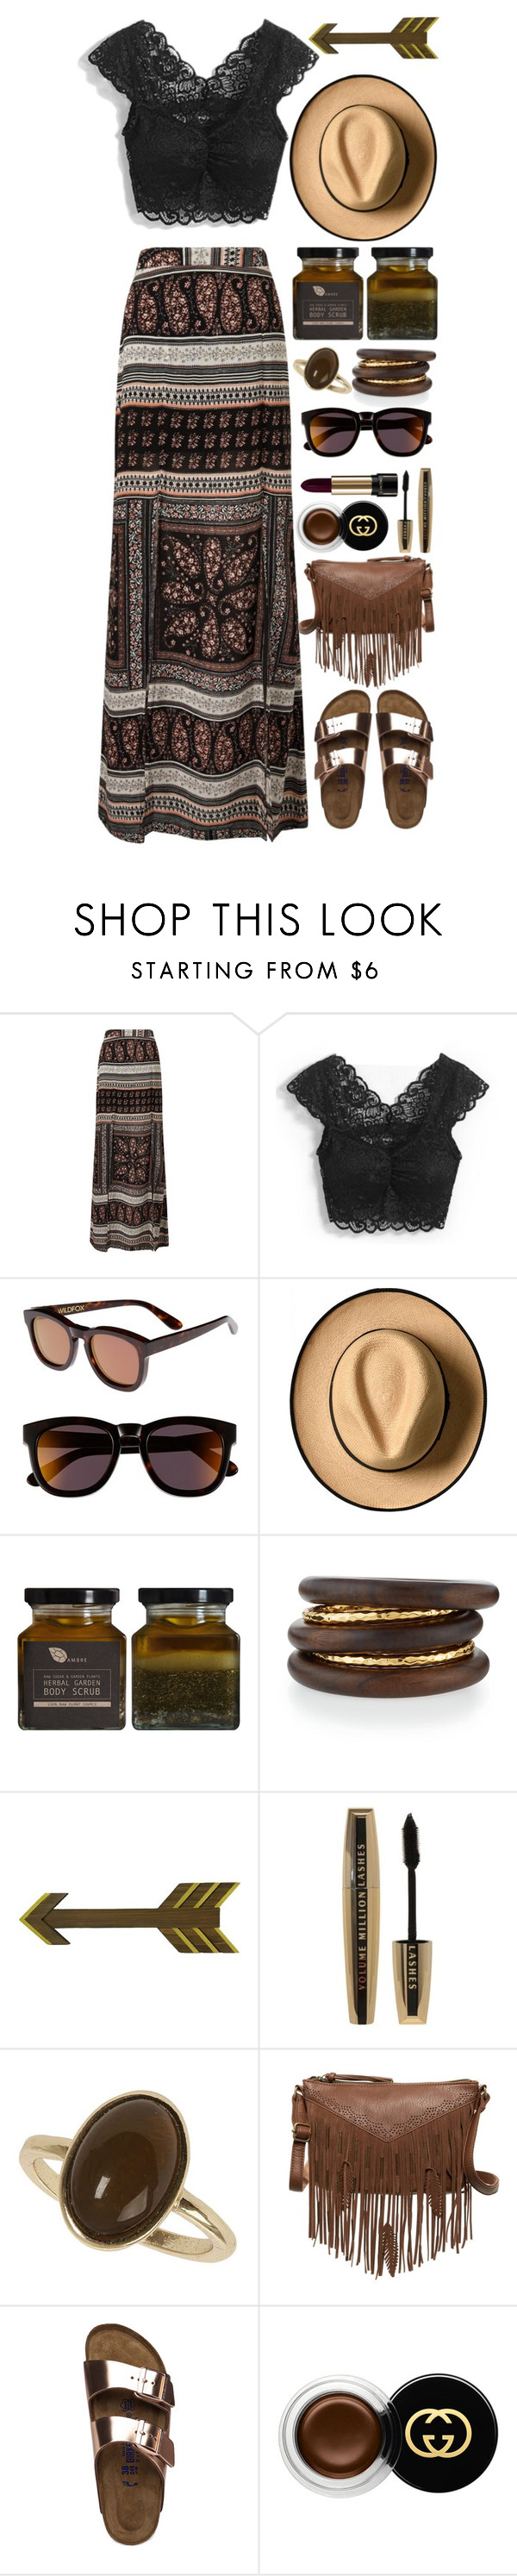 """WILDFOX // itsybitsy62"" by itsybitsy62 ❤ liked on Polyvore featuring Miss Selfridge, WithChic, Wildfox, AMBRE, NEST Jewelry, L'Oréal Paris, Dorothy Perkins, T-shirt & Jeans, Birkenstock and Gucci"